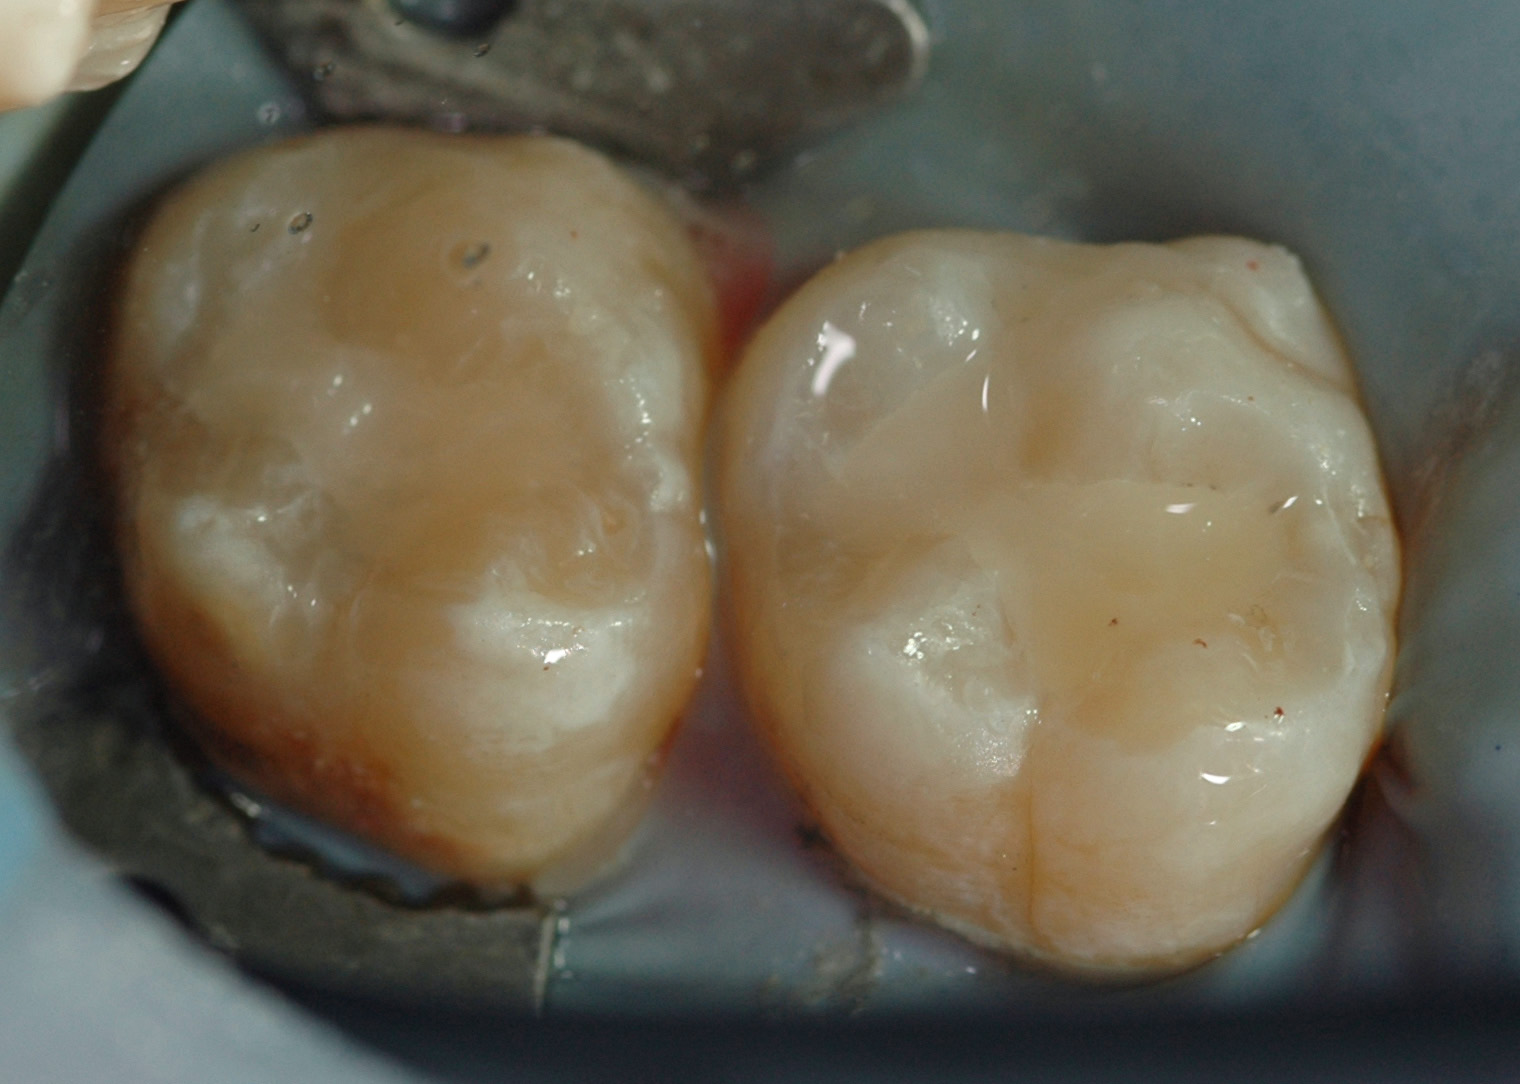 Example of replacing leaky fillings